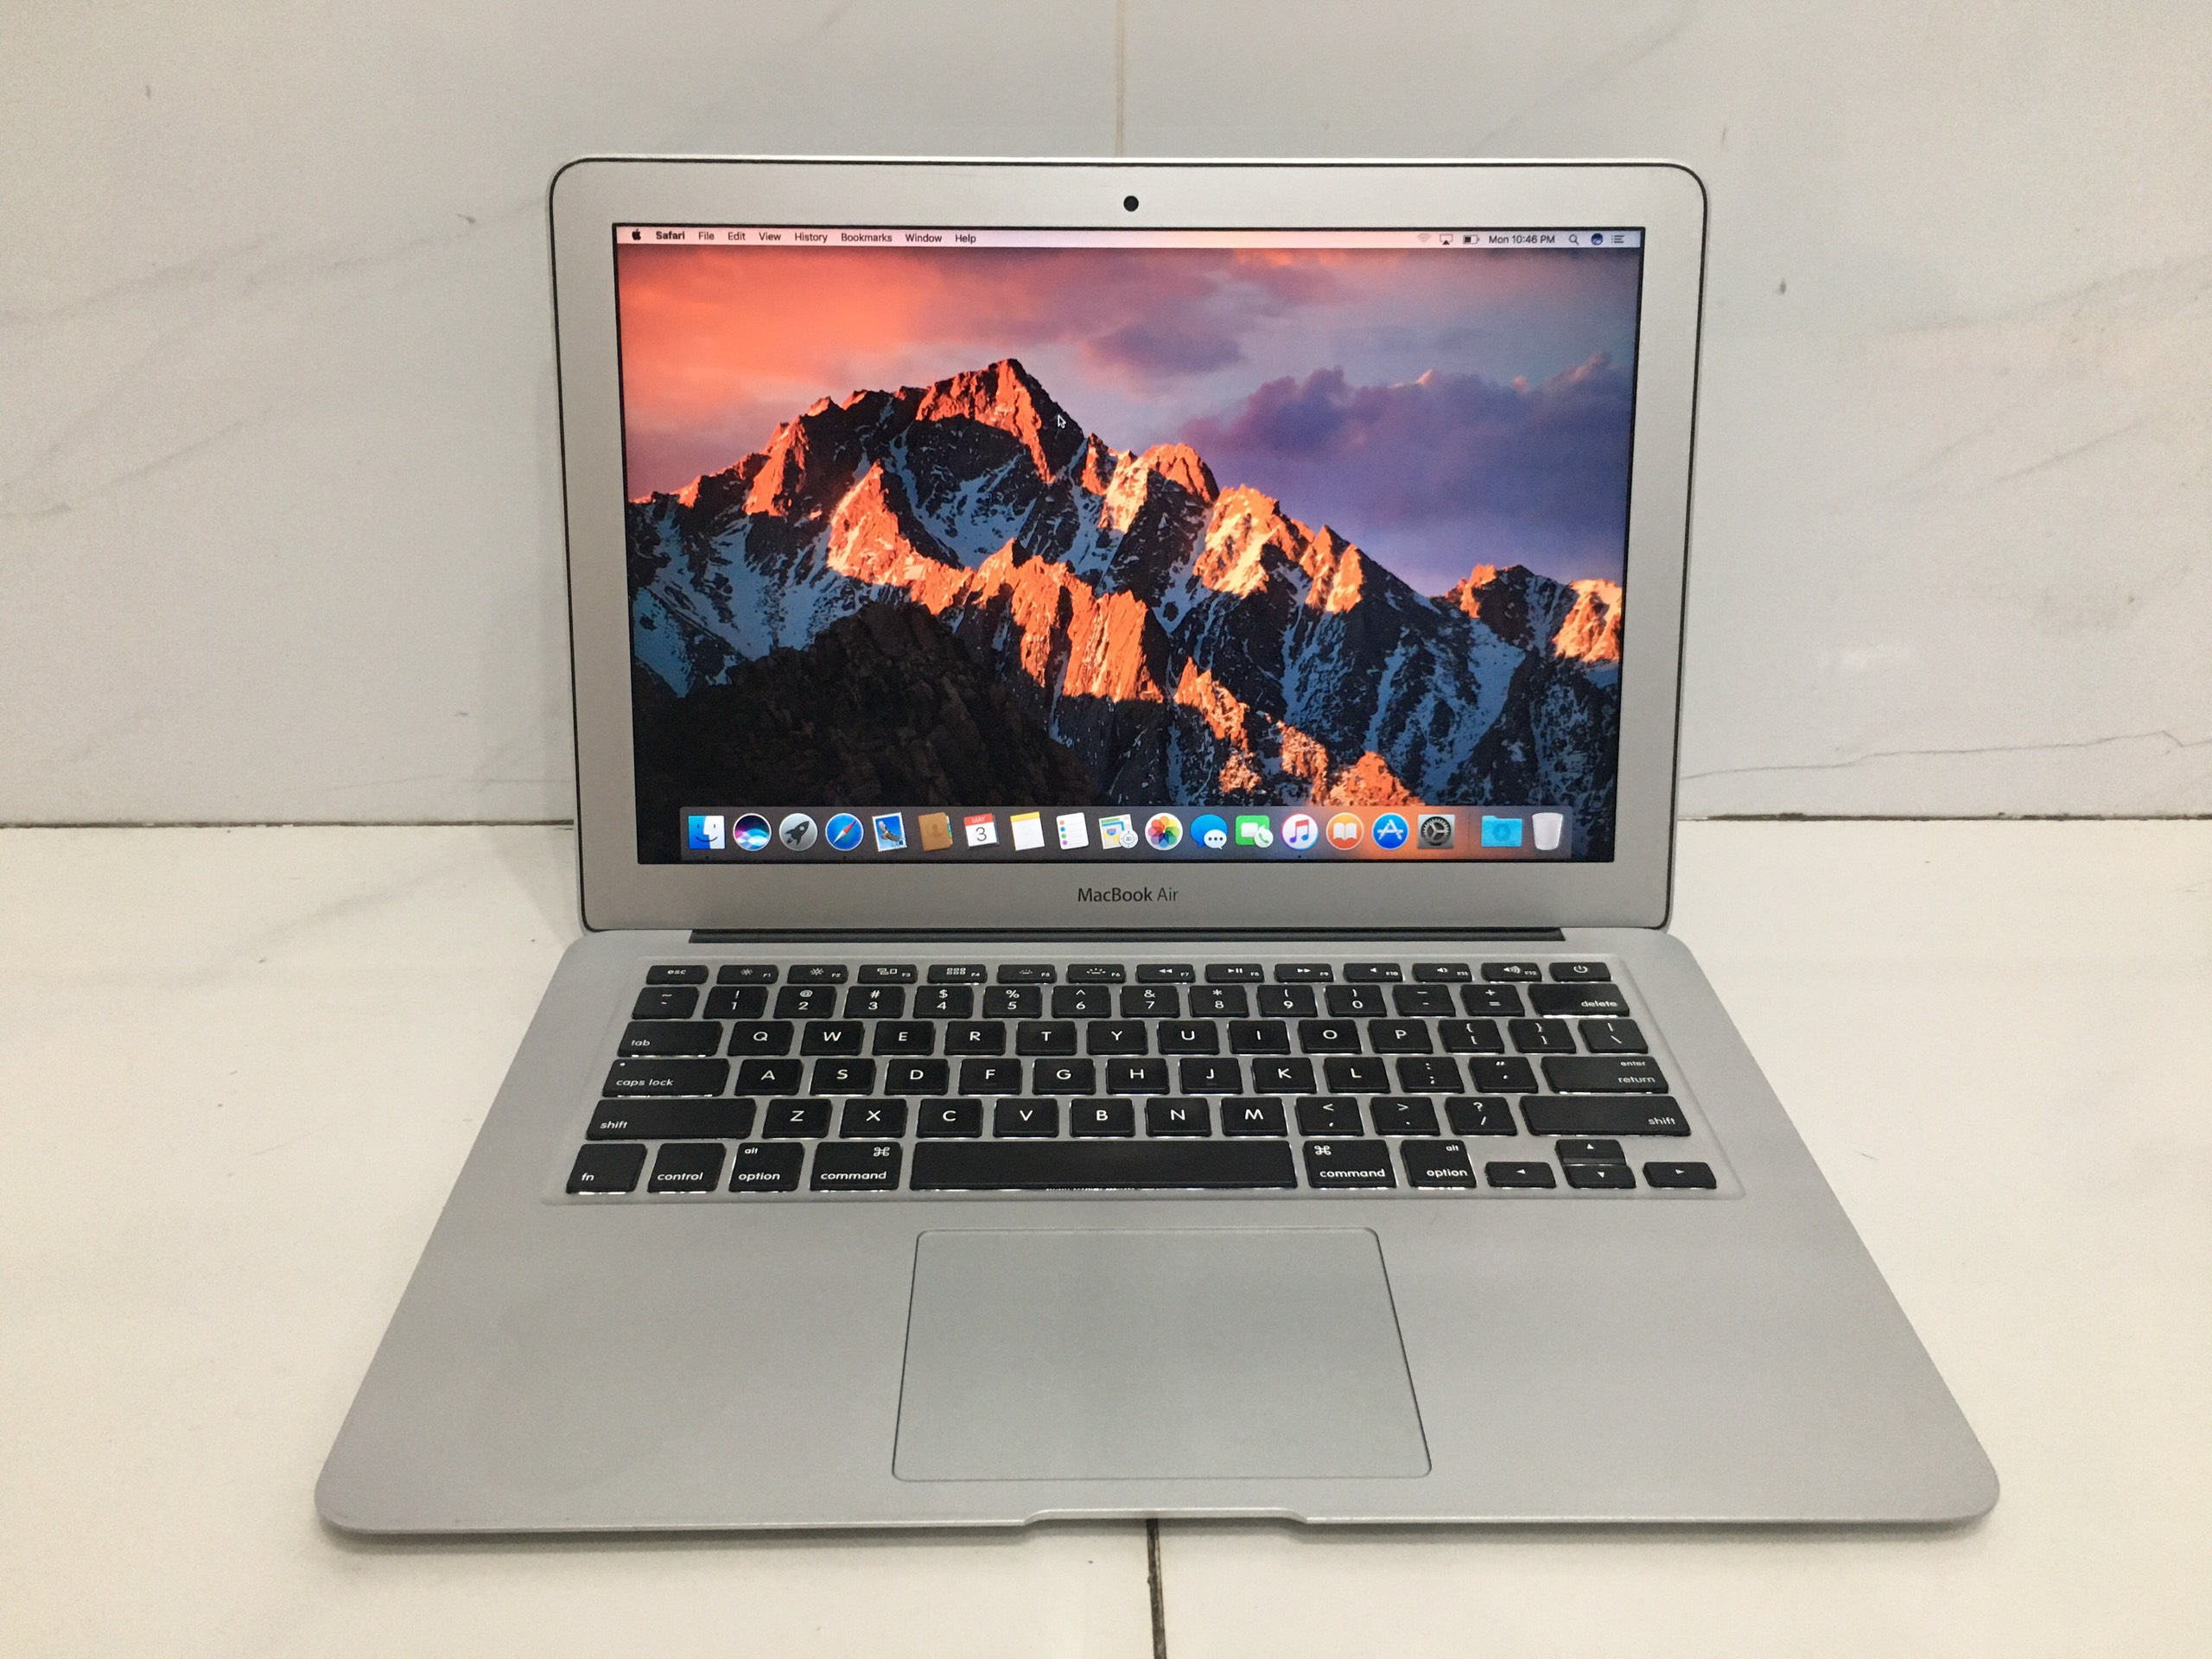 macbook-air-2015-core-i5-16ghz-ram-8gb-ssd-256gb-13-inch